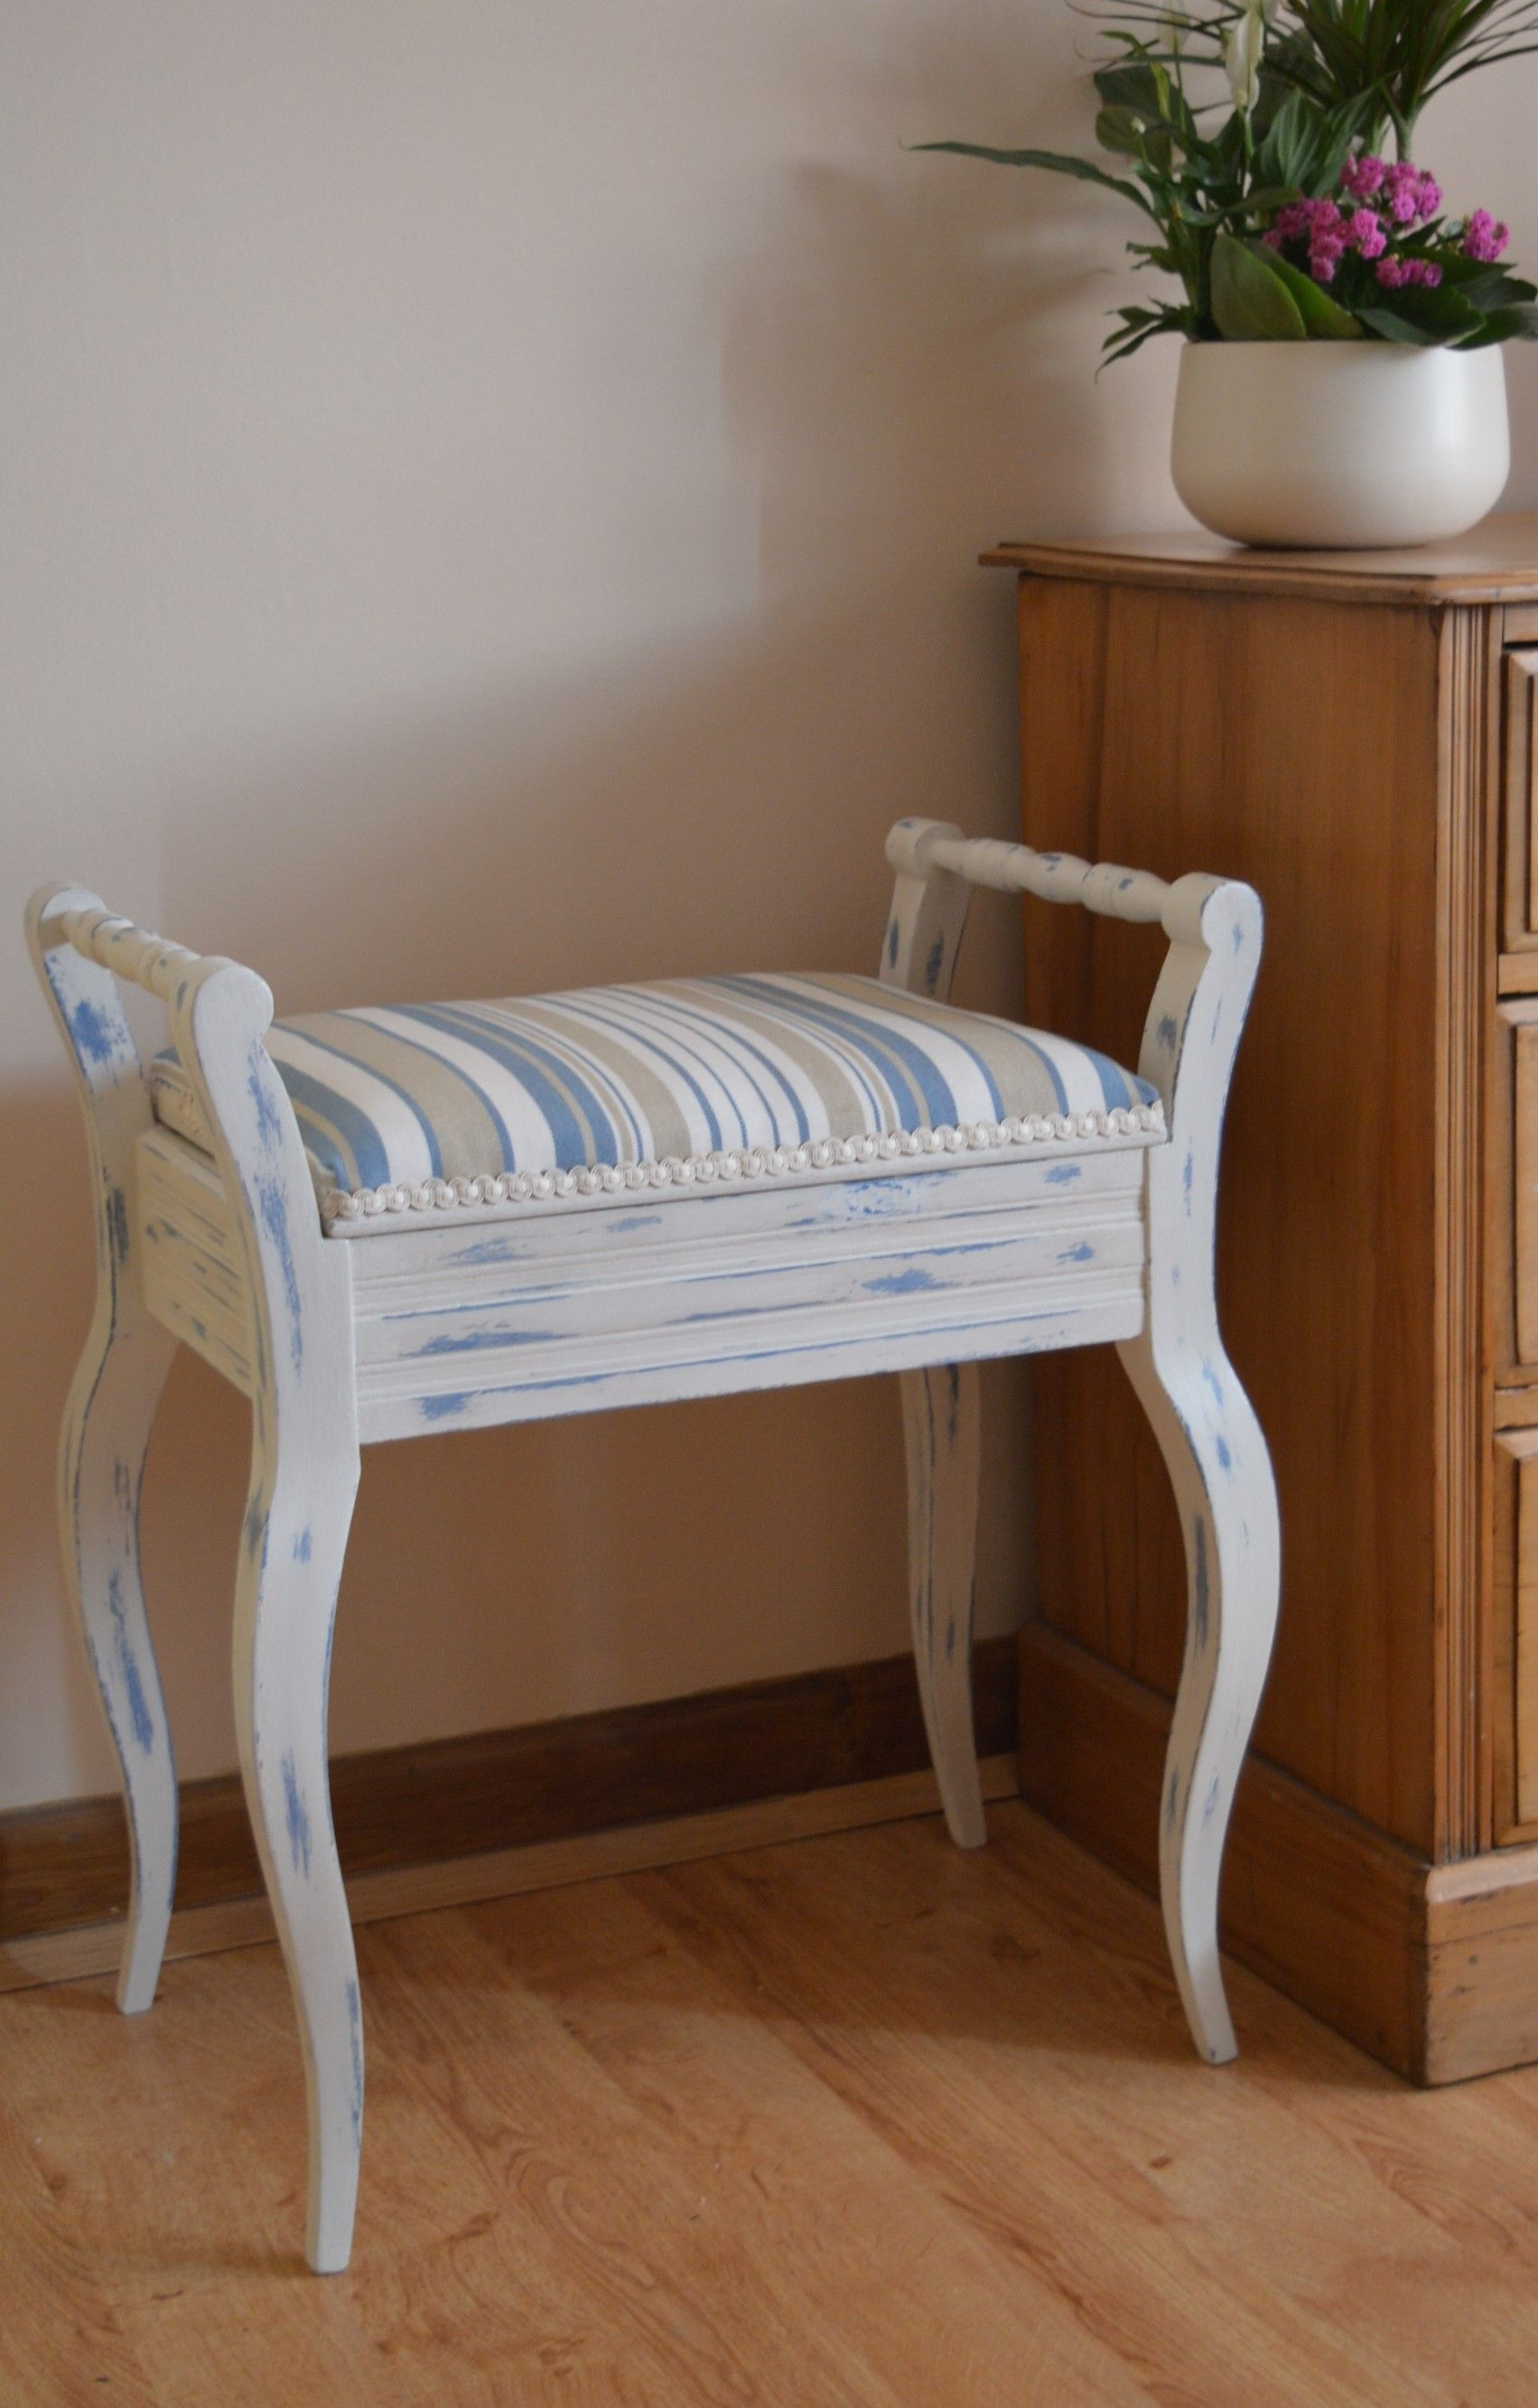 This Piano Stool Won Its Stripes After A Complete Reupholstery Make Over Upholstered Furniture Upholstered Chairs